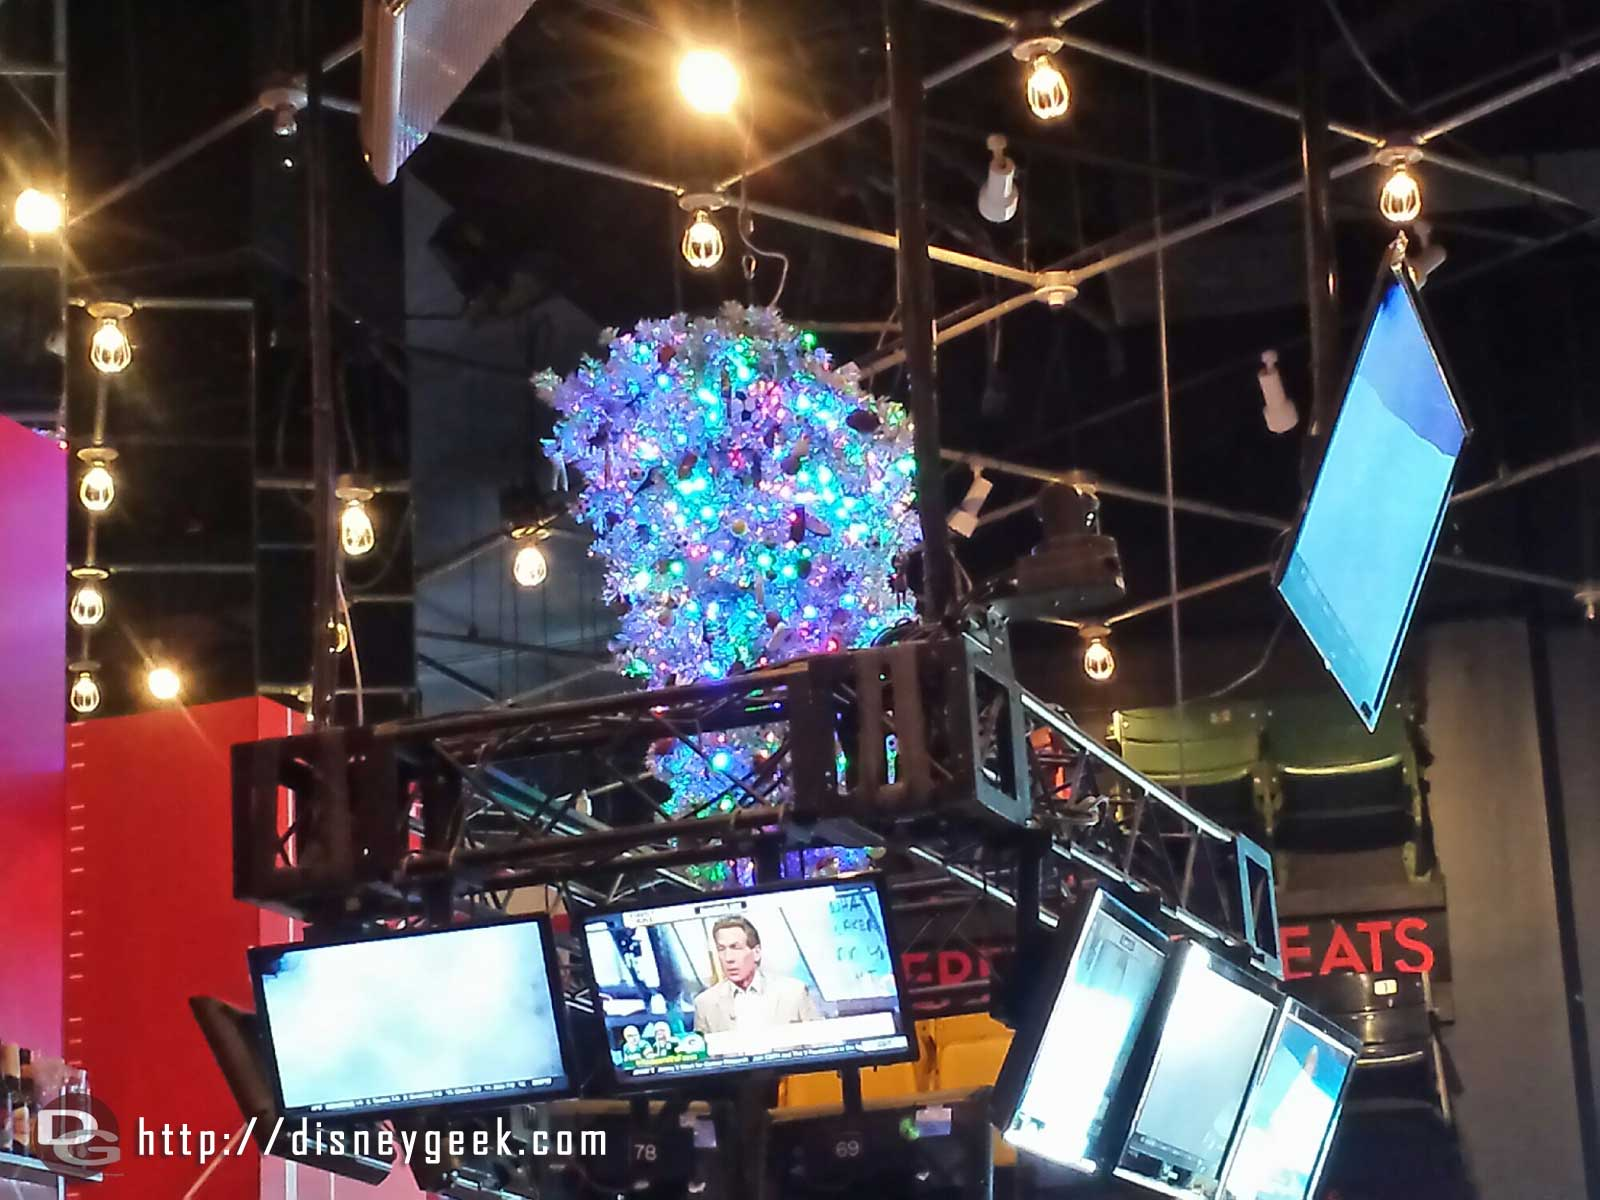 A Christmas tree hanging upside down above the bar in the ESPN Club